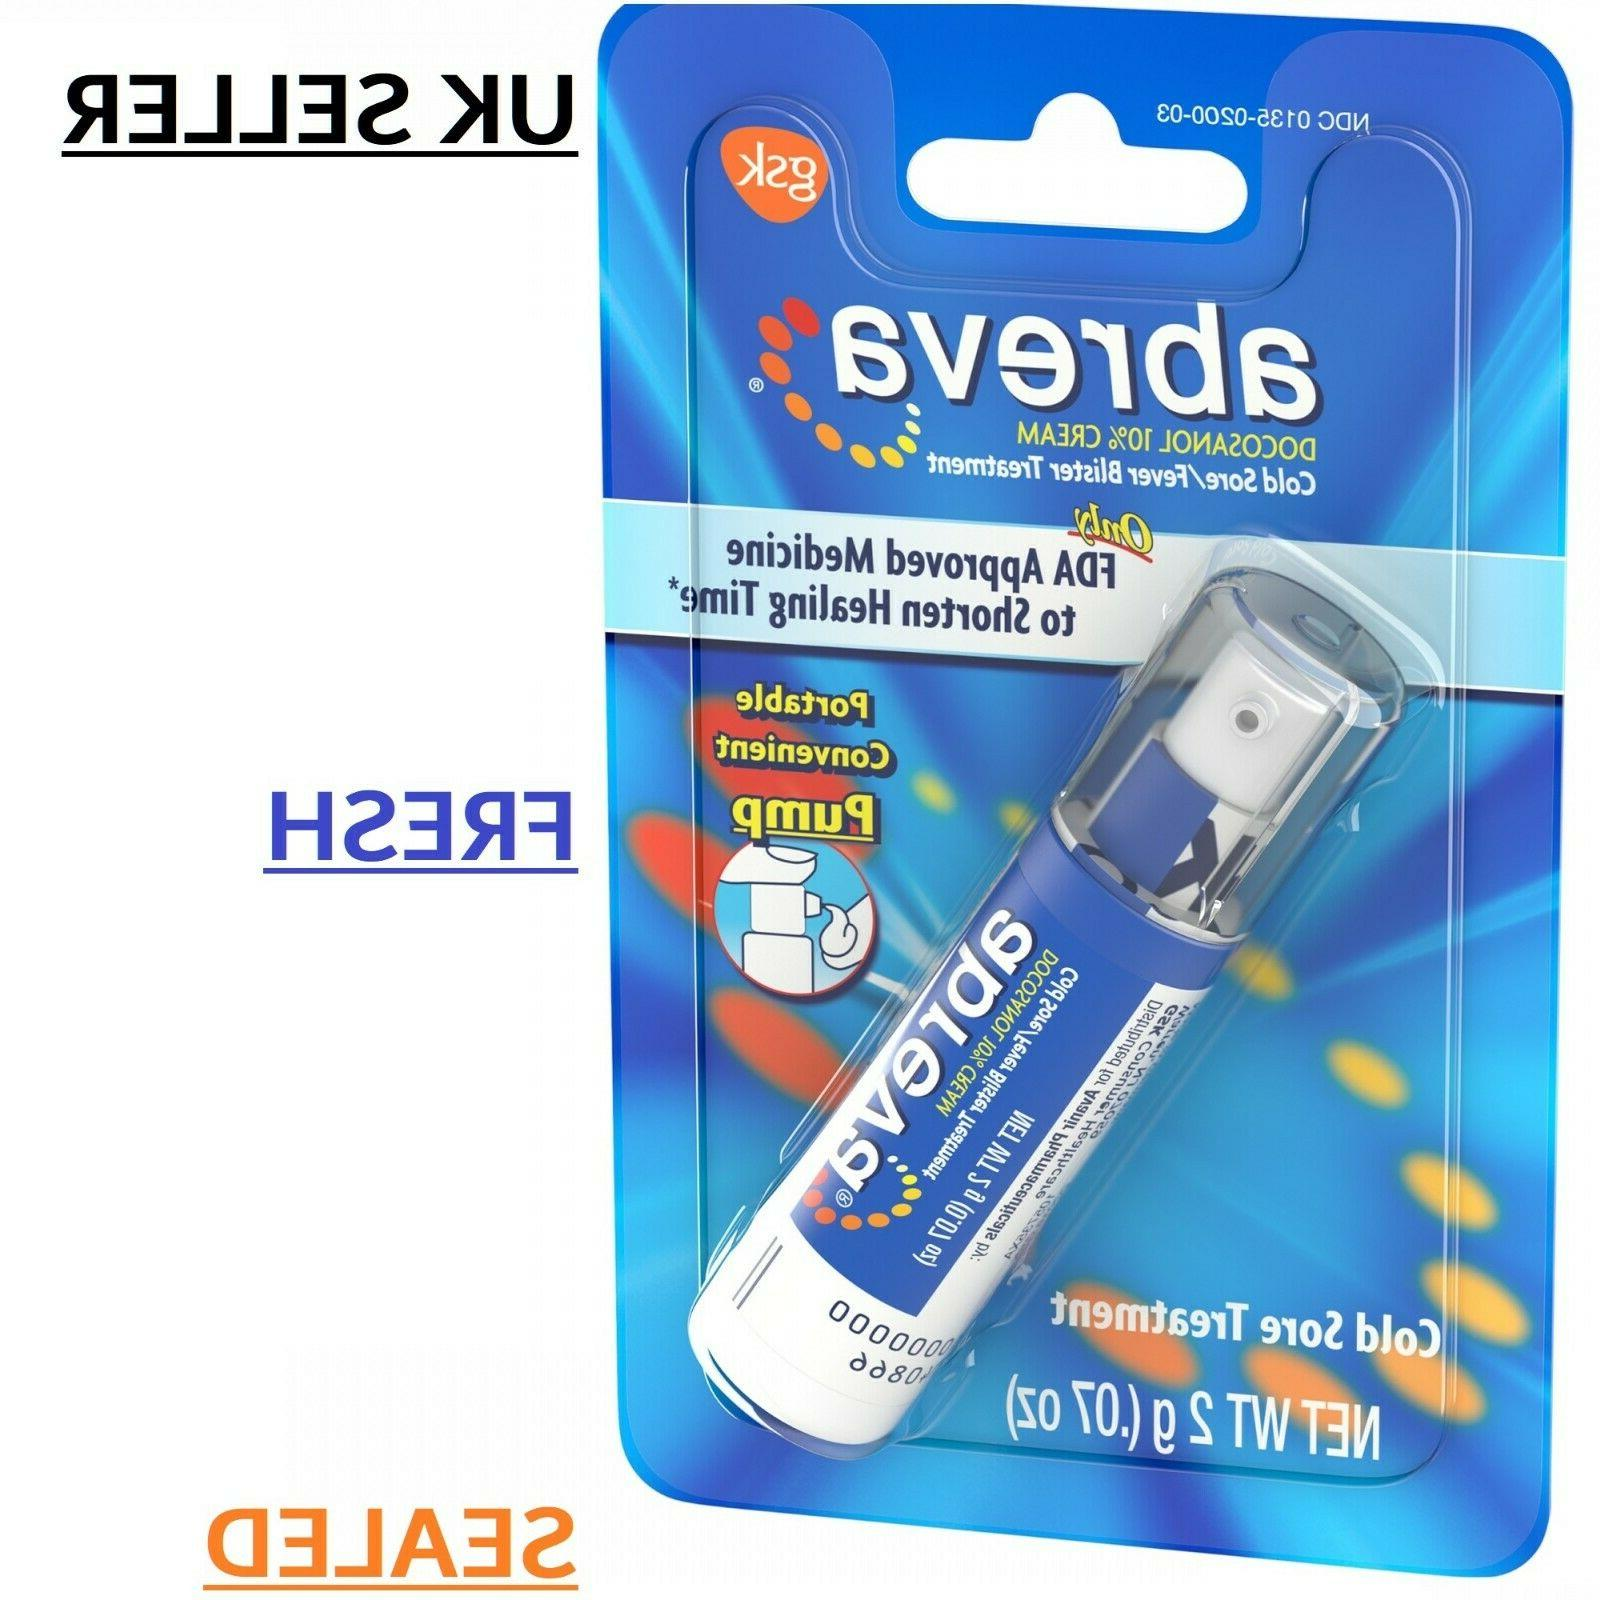 cold sore treatment pump for fever blisters